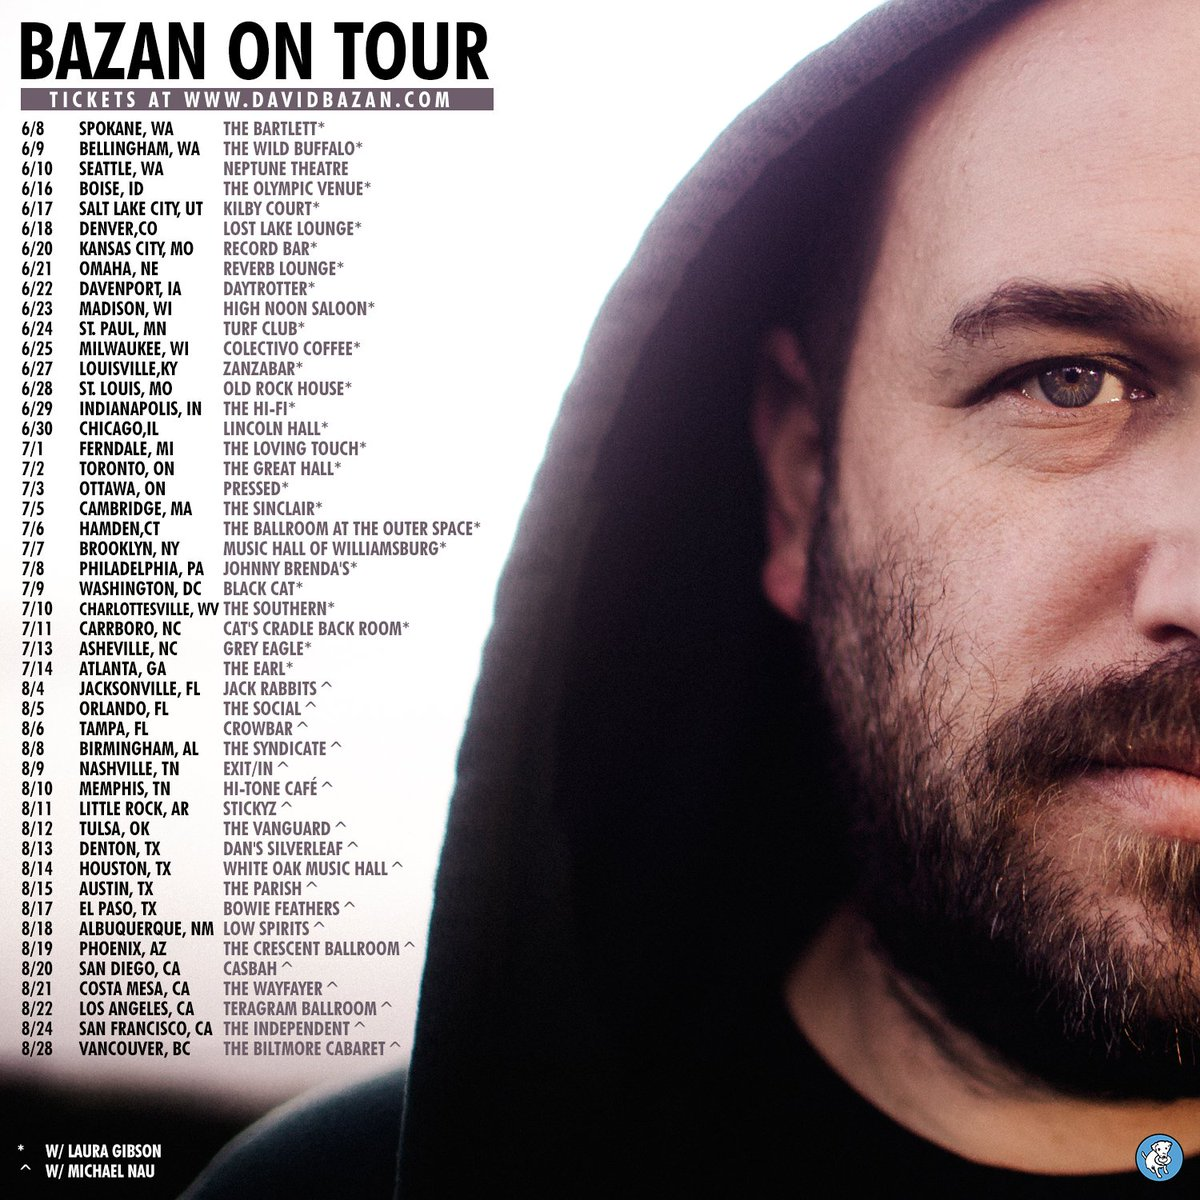 Get your tickets now to see @davidbazan on tour this summer with @lauragibsongirl and @naumichael! https://t.co/TOhxz1hvM8